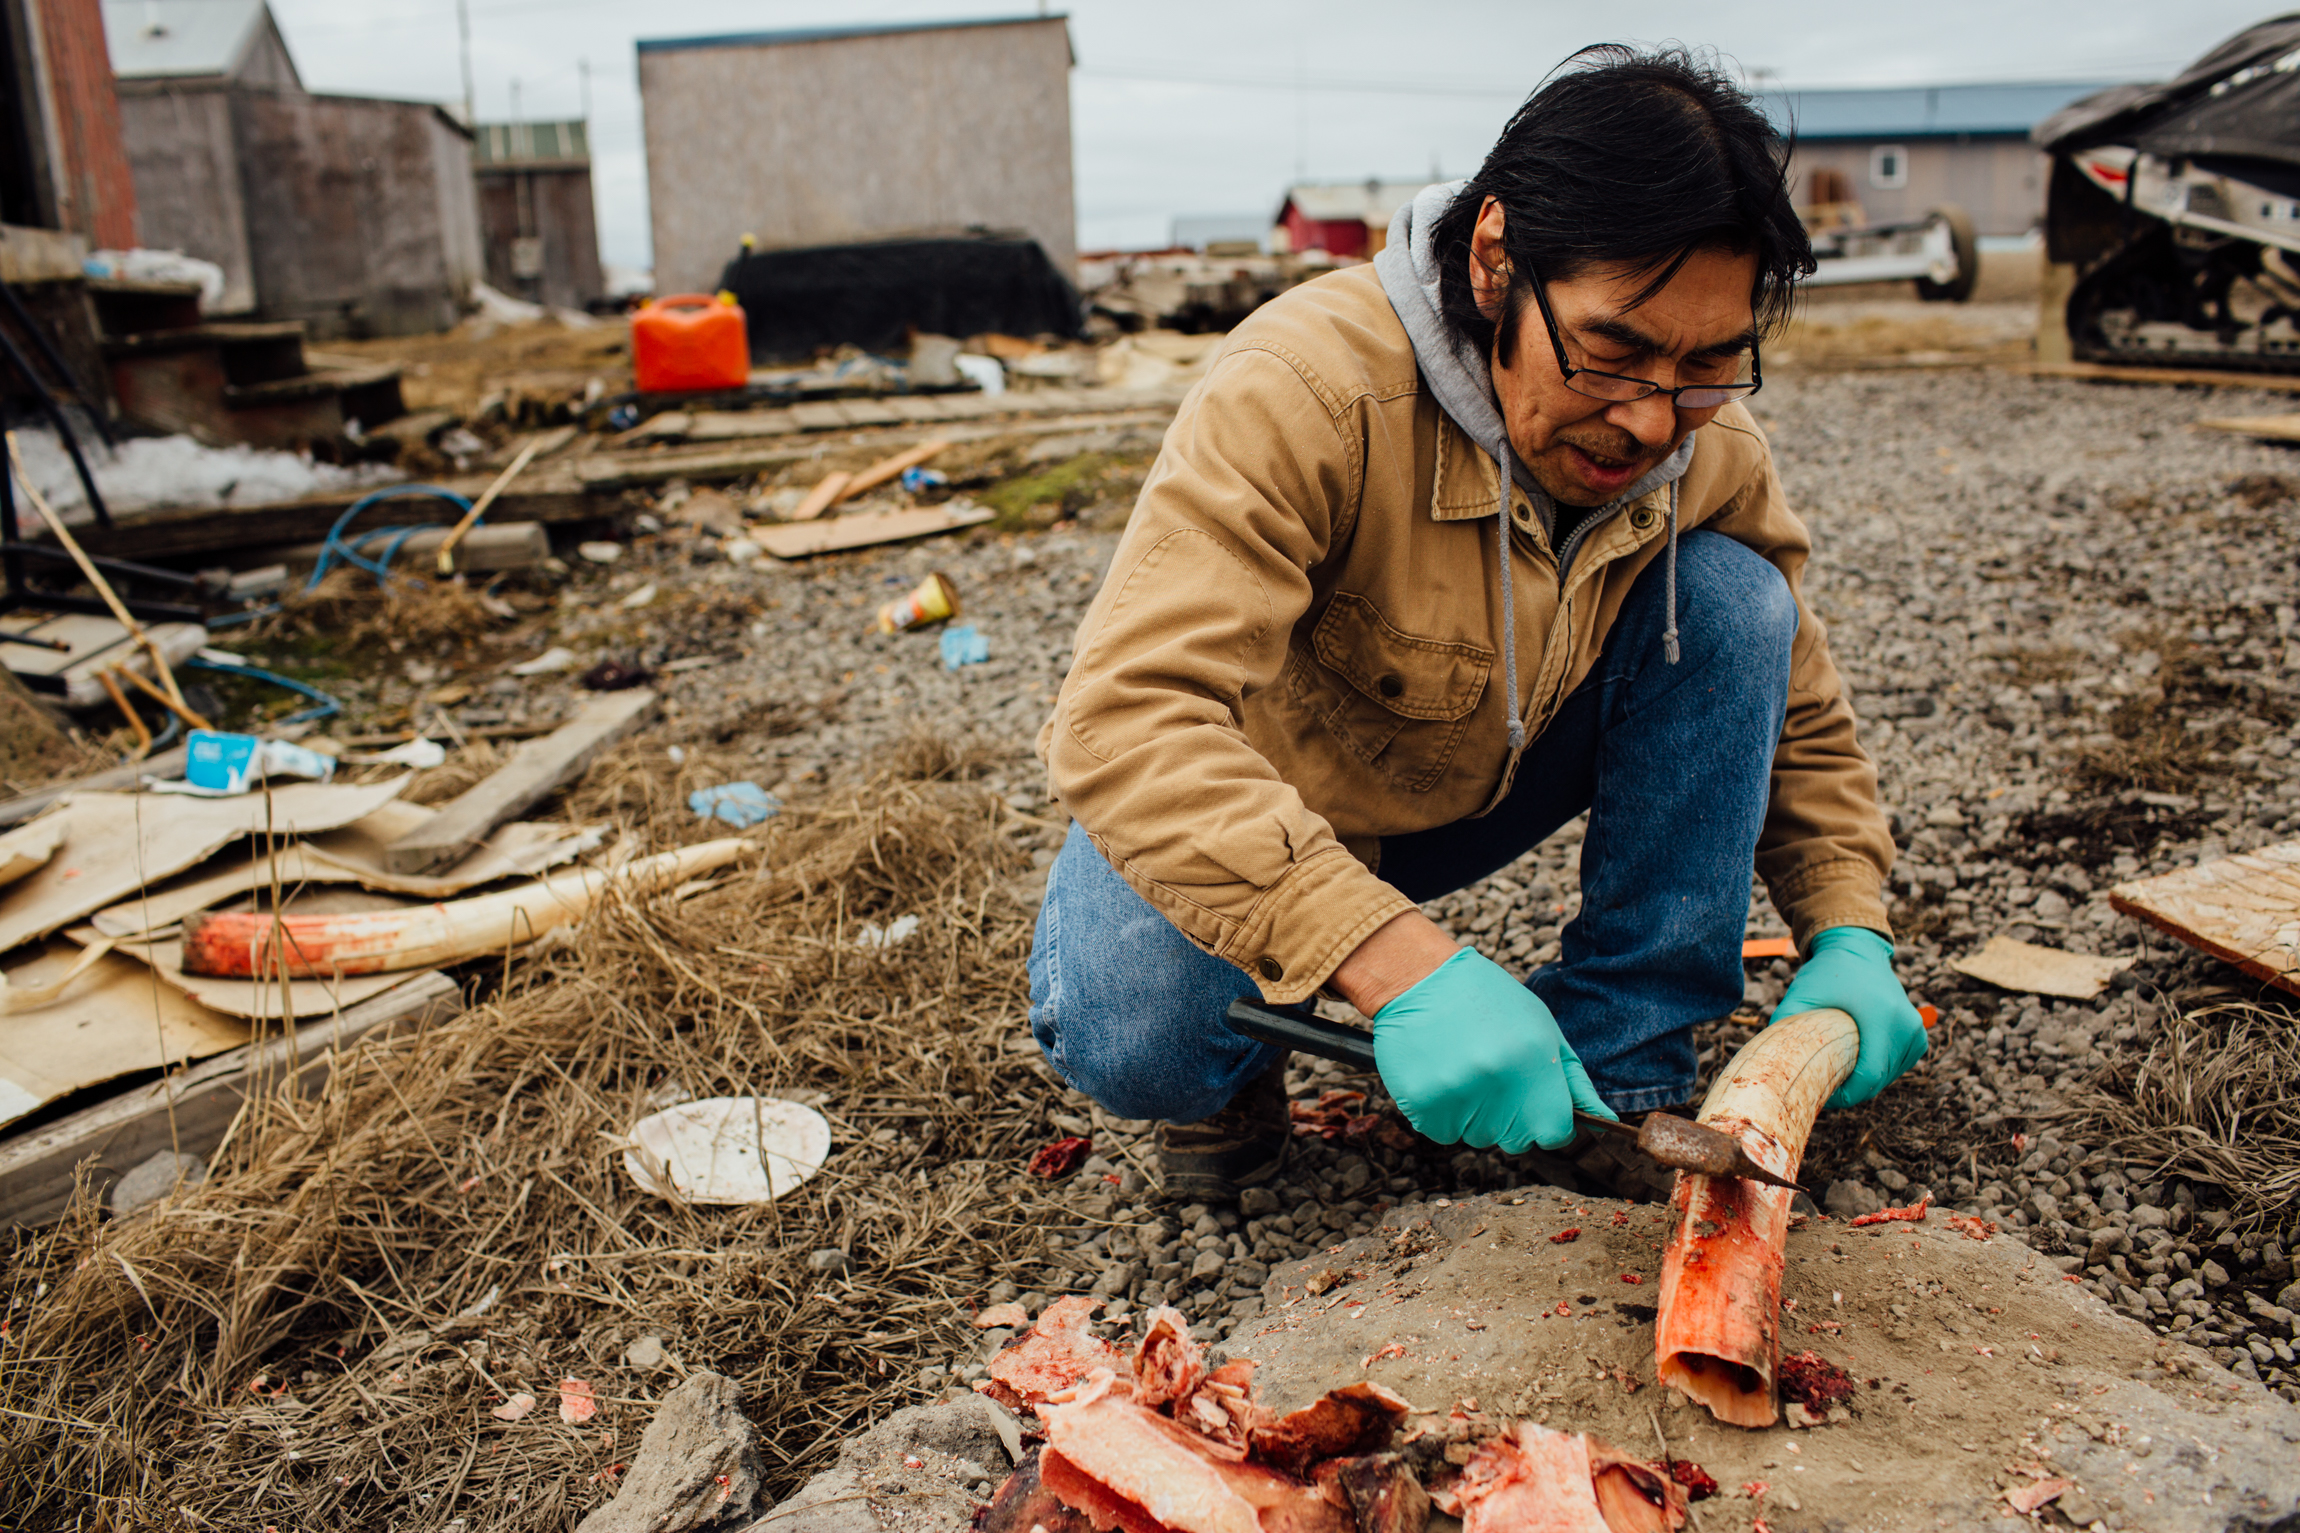 Ben Pungyawiyi cleans a walrus tusk, preparing it for carving. Savoonga, St. Lawrence Island, Alaska.